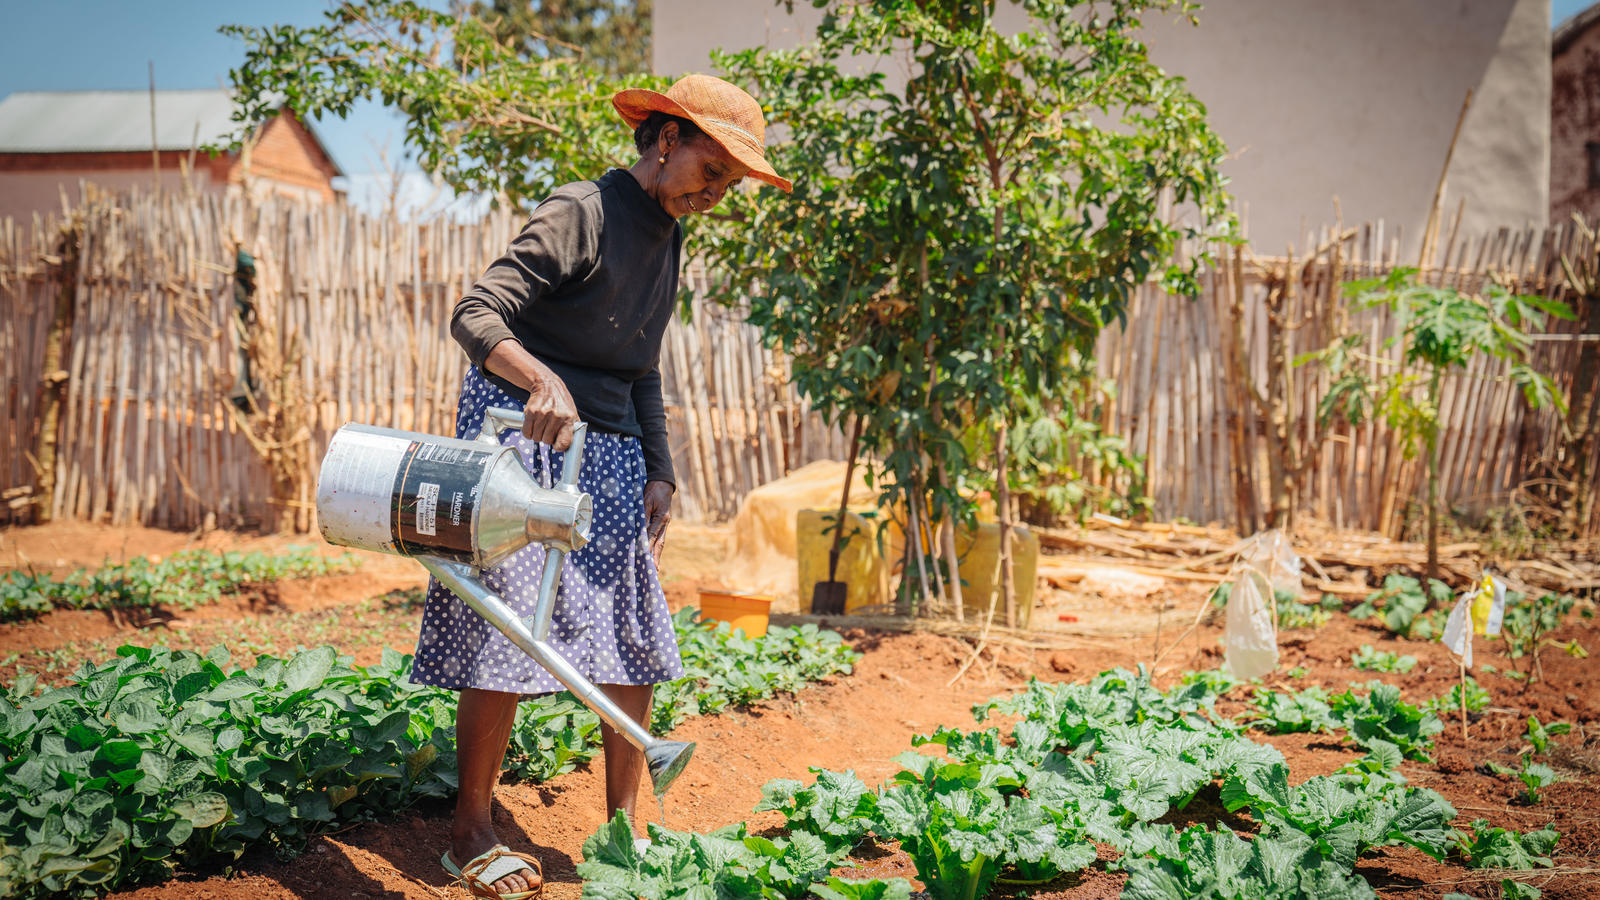 Marie, waters her vegetable garden near her home in the Bongolava, Madagascar.